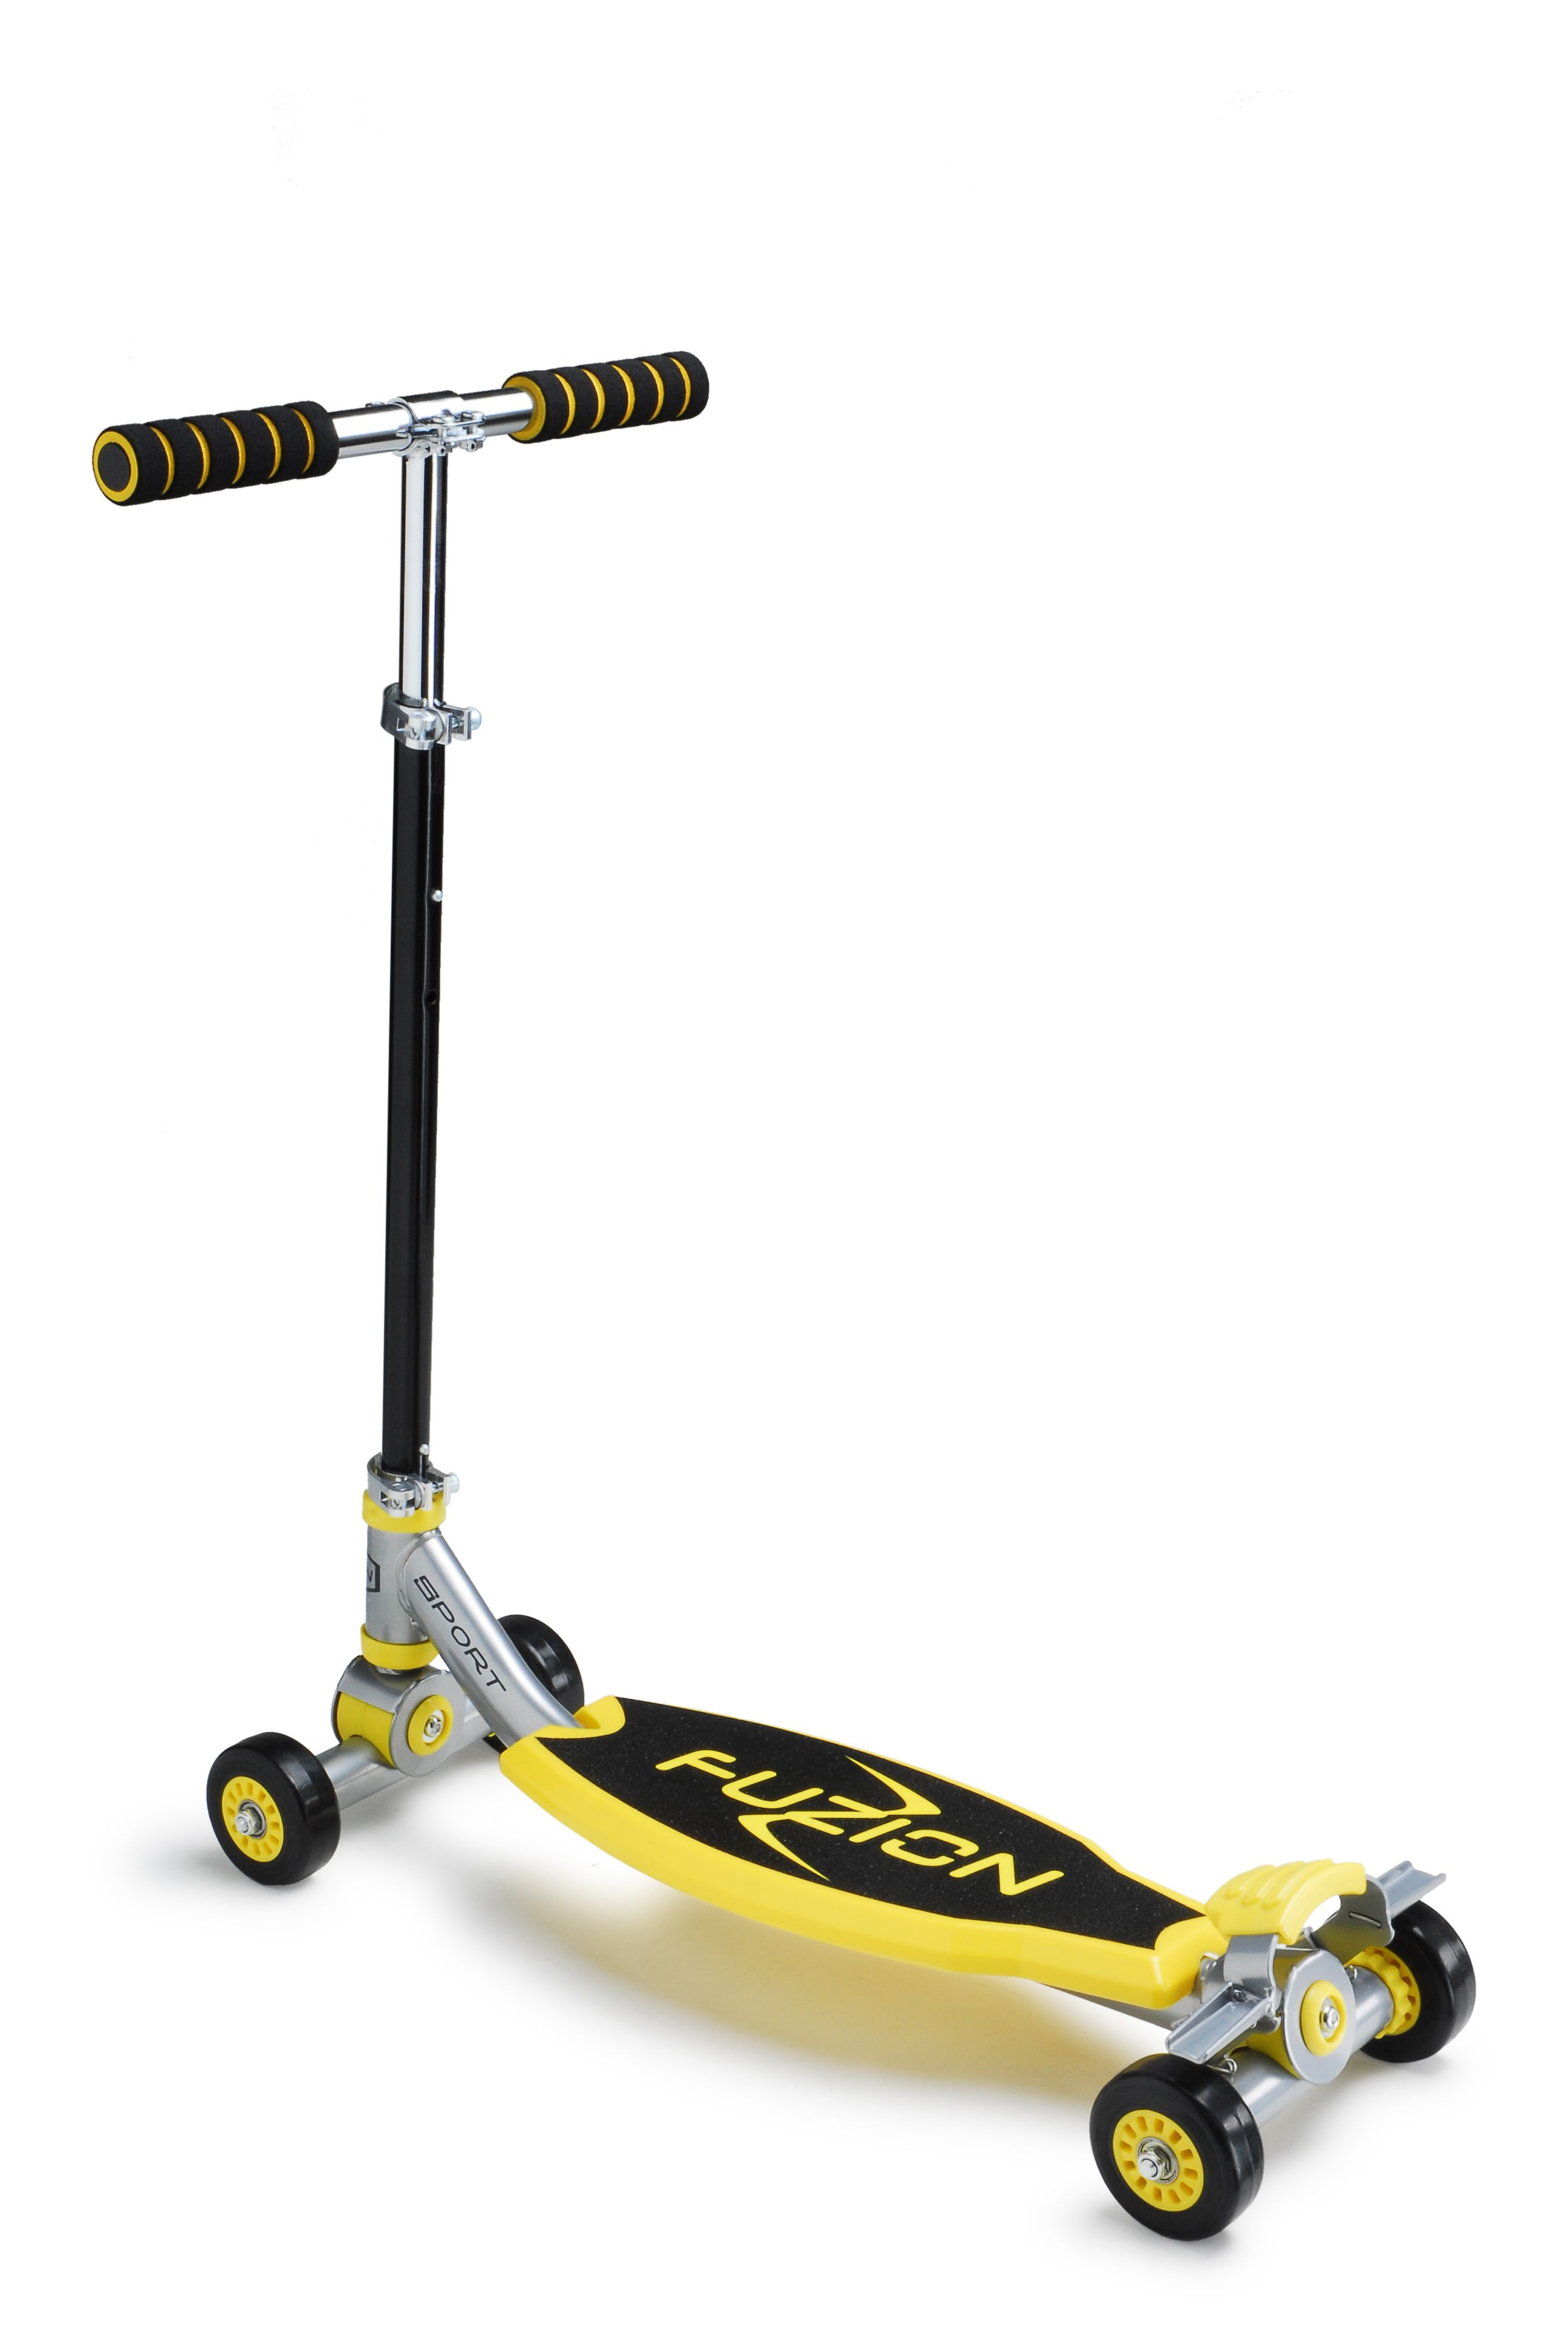 Sport Fuzion Scooter 4 Wheel Scooters Pro Scooters